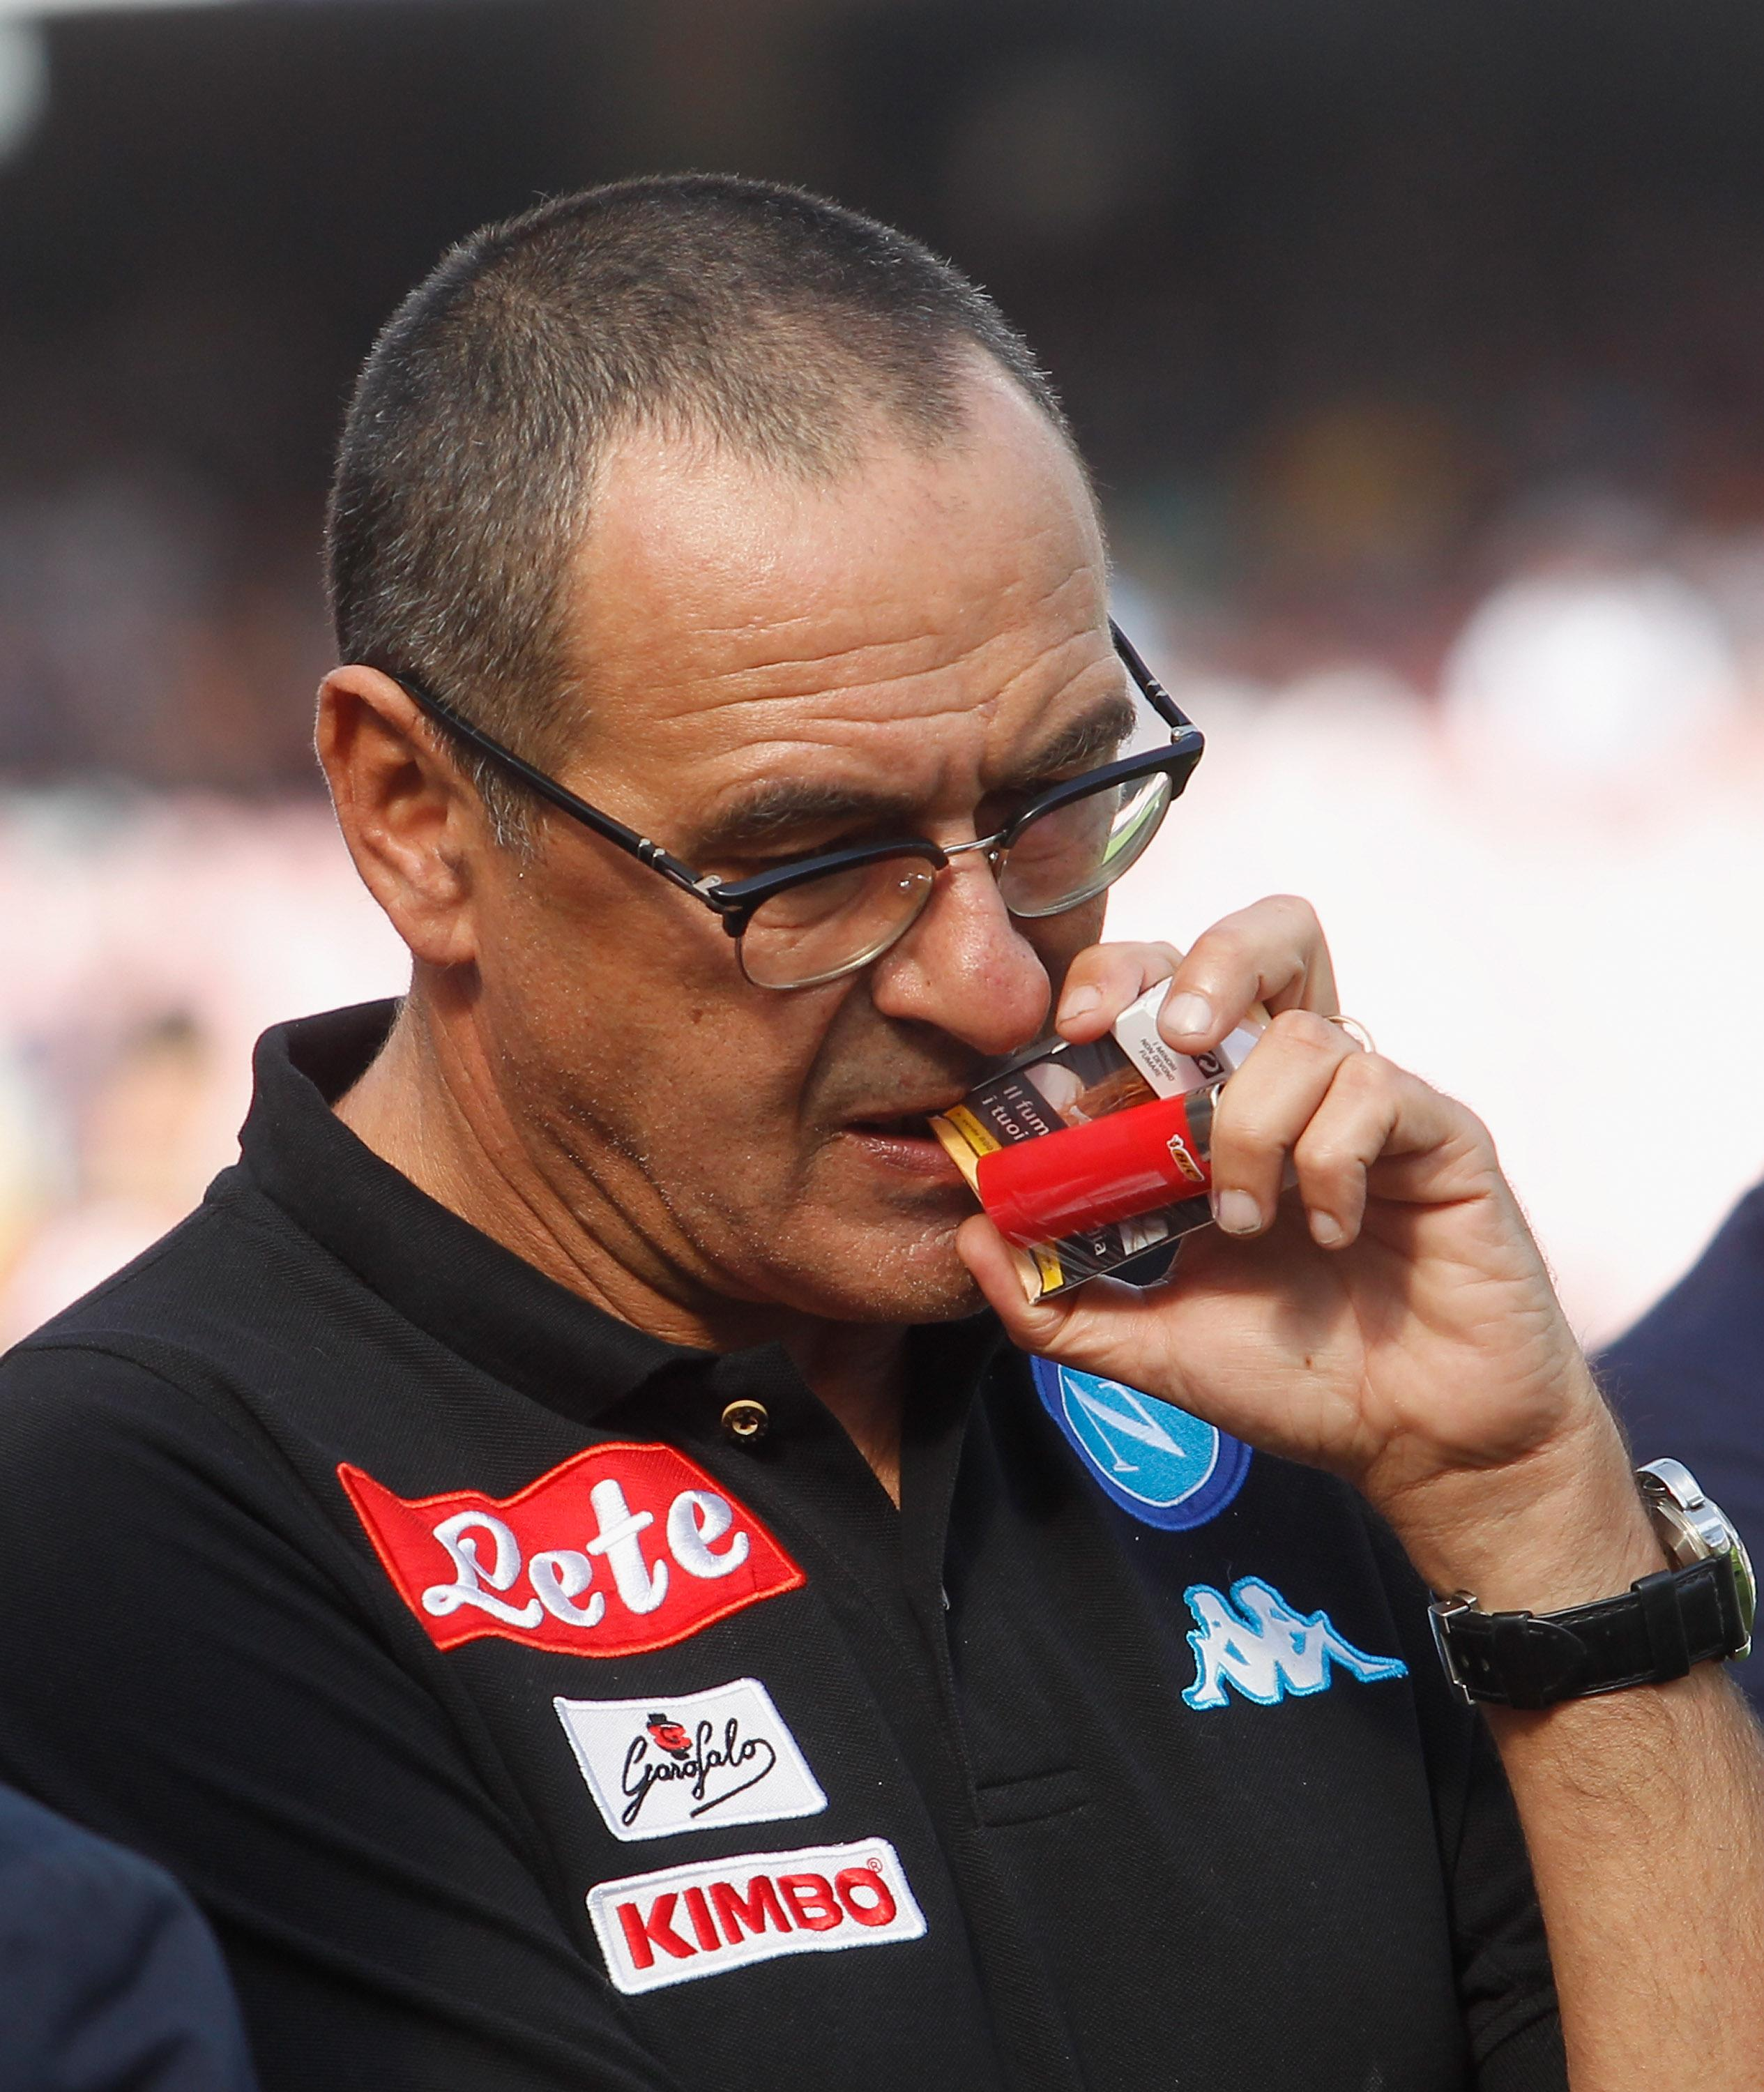 Sarri is known as a perfectionist